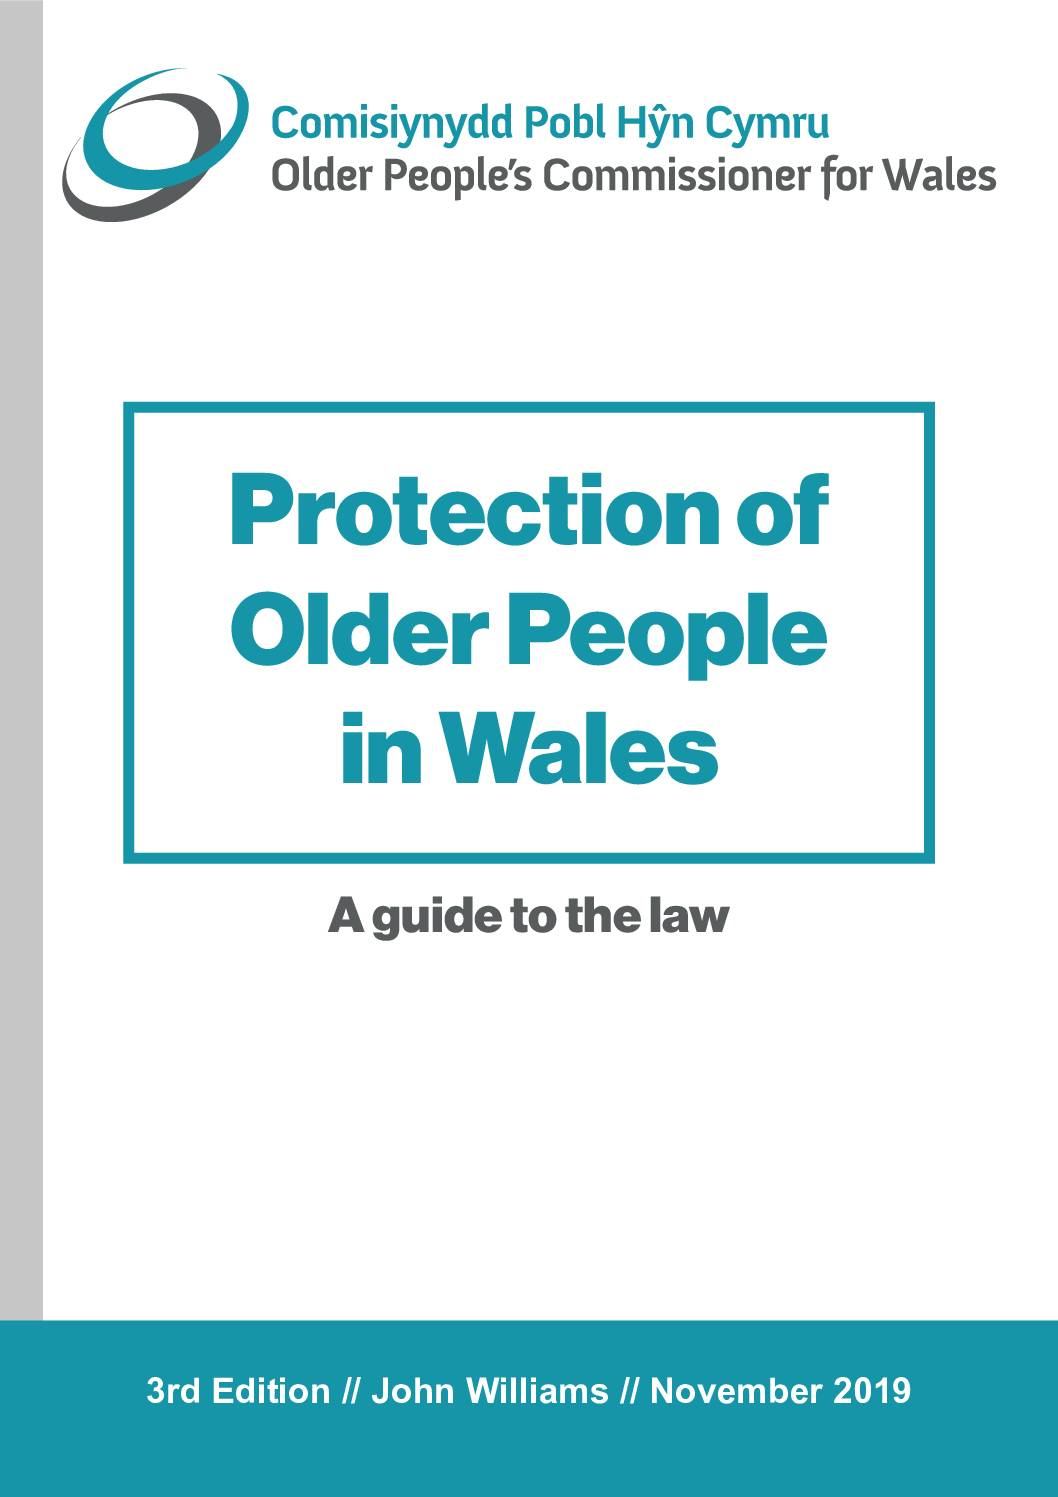 Protection of Older People in Wales – A guide to the Law.